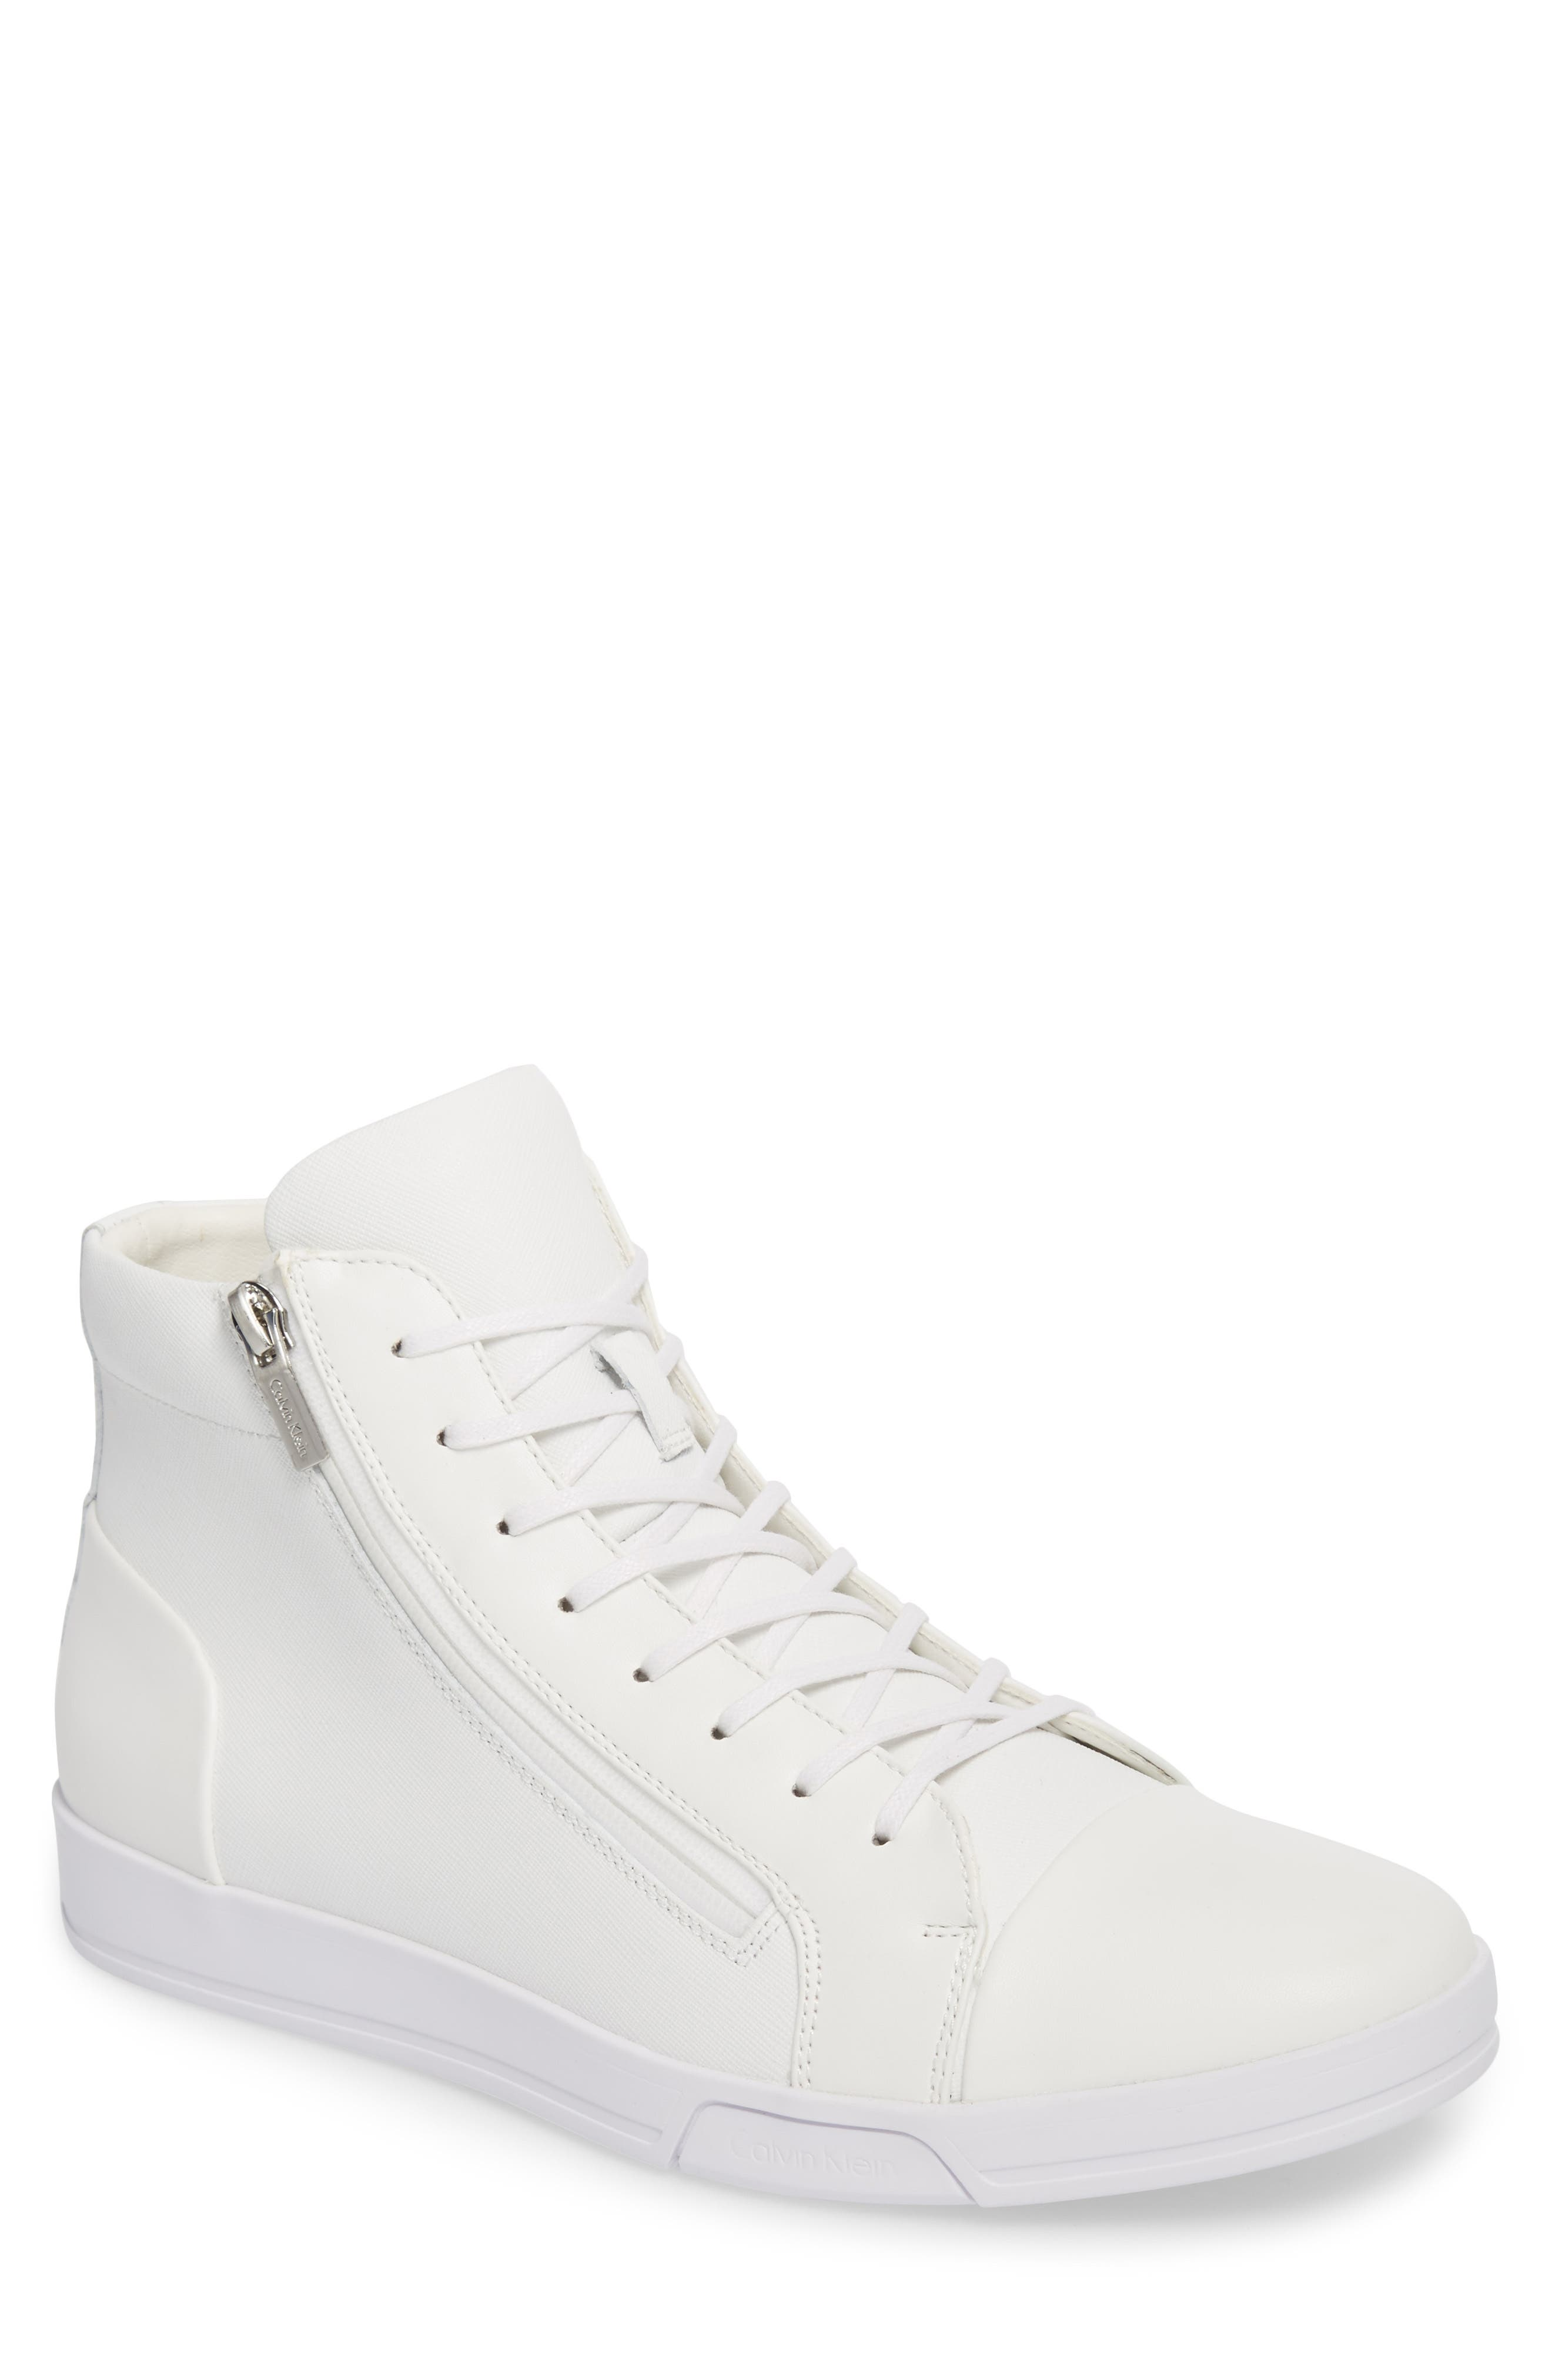 Berke High Top Sneaker,                         Main,                         color, White Leather